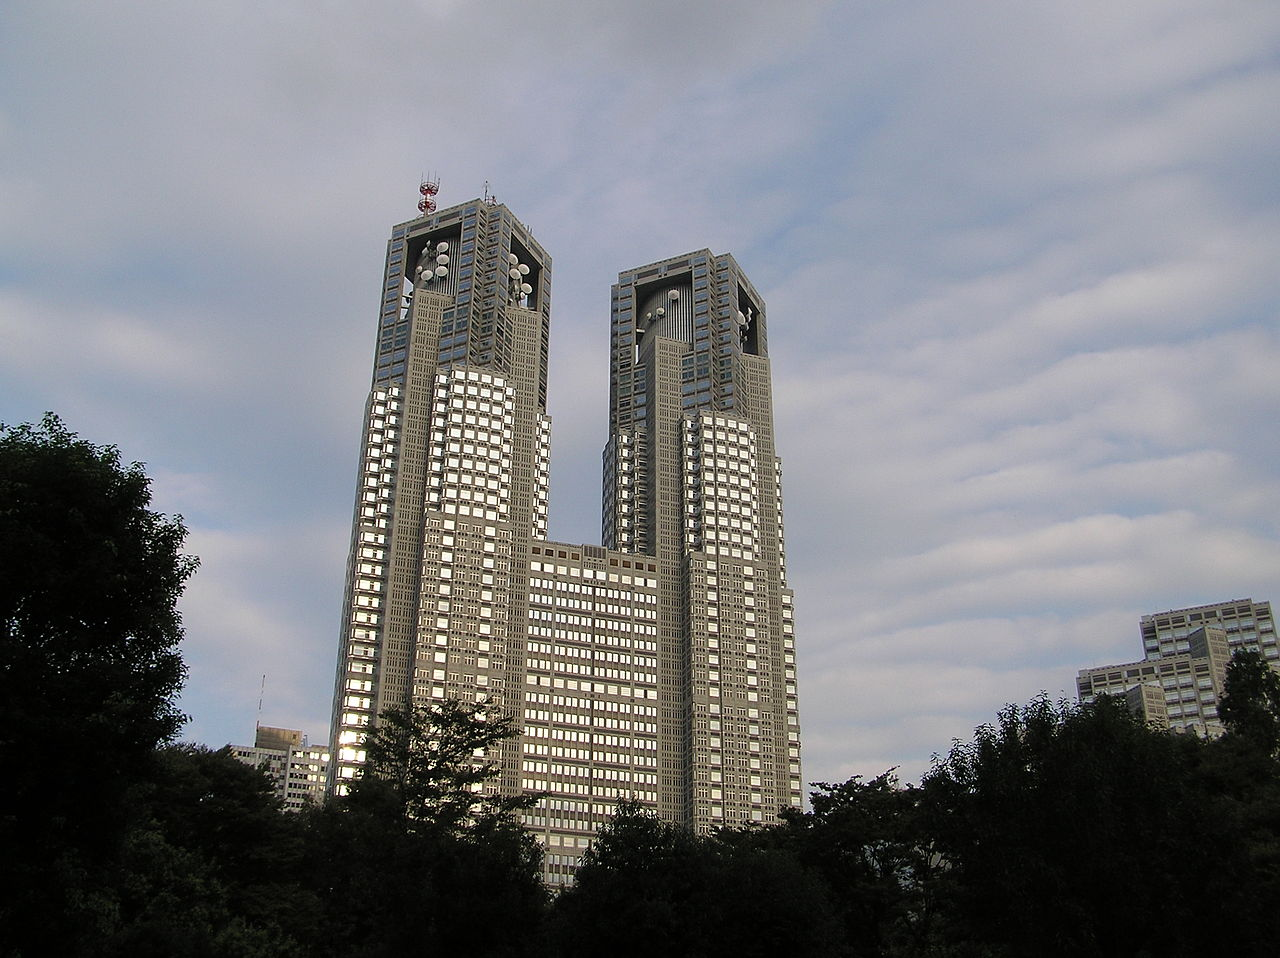 tokyo_metropolitan_government_building_no1_2_tocho_5_october_2003.jpg